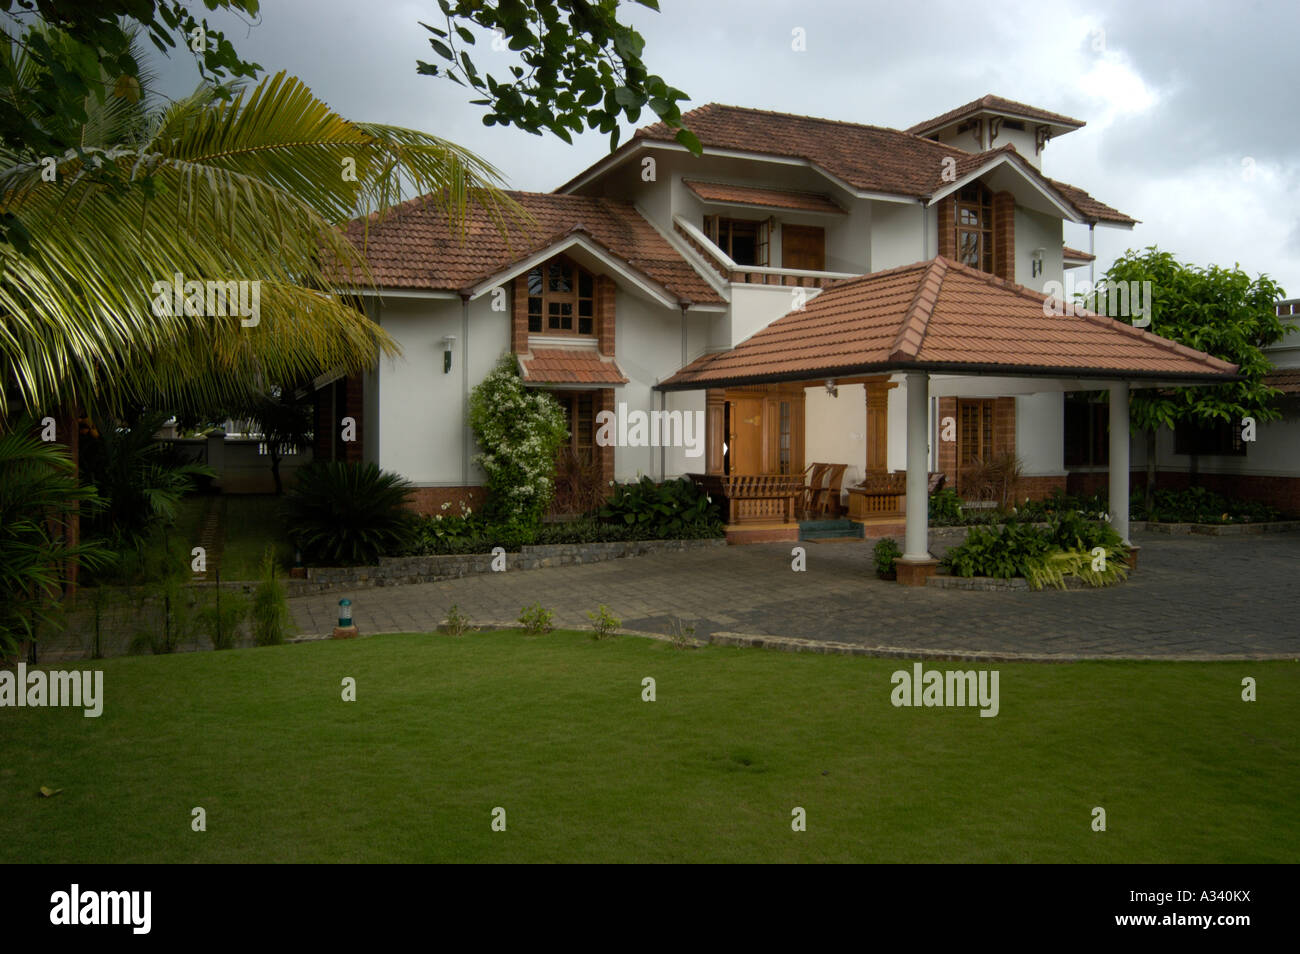 Architect Designed Modern Kerala House With Traditional Style Stock Photo 10662637 Alamy